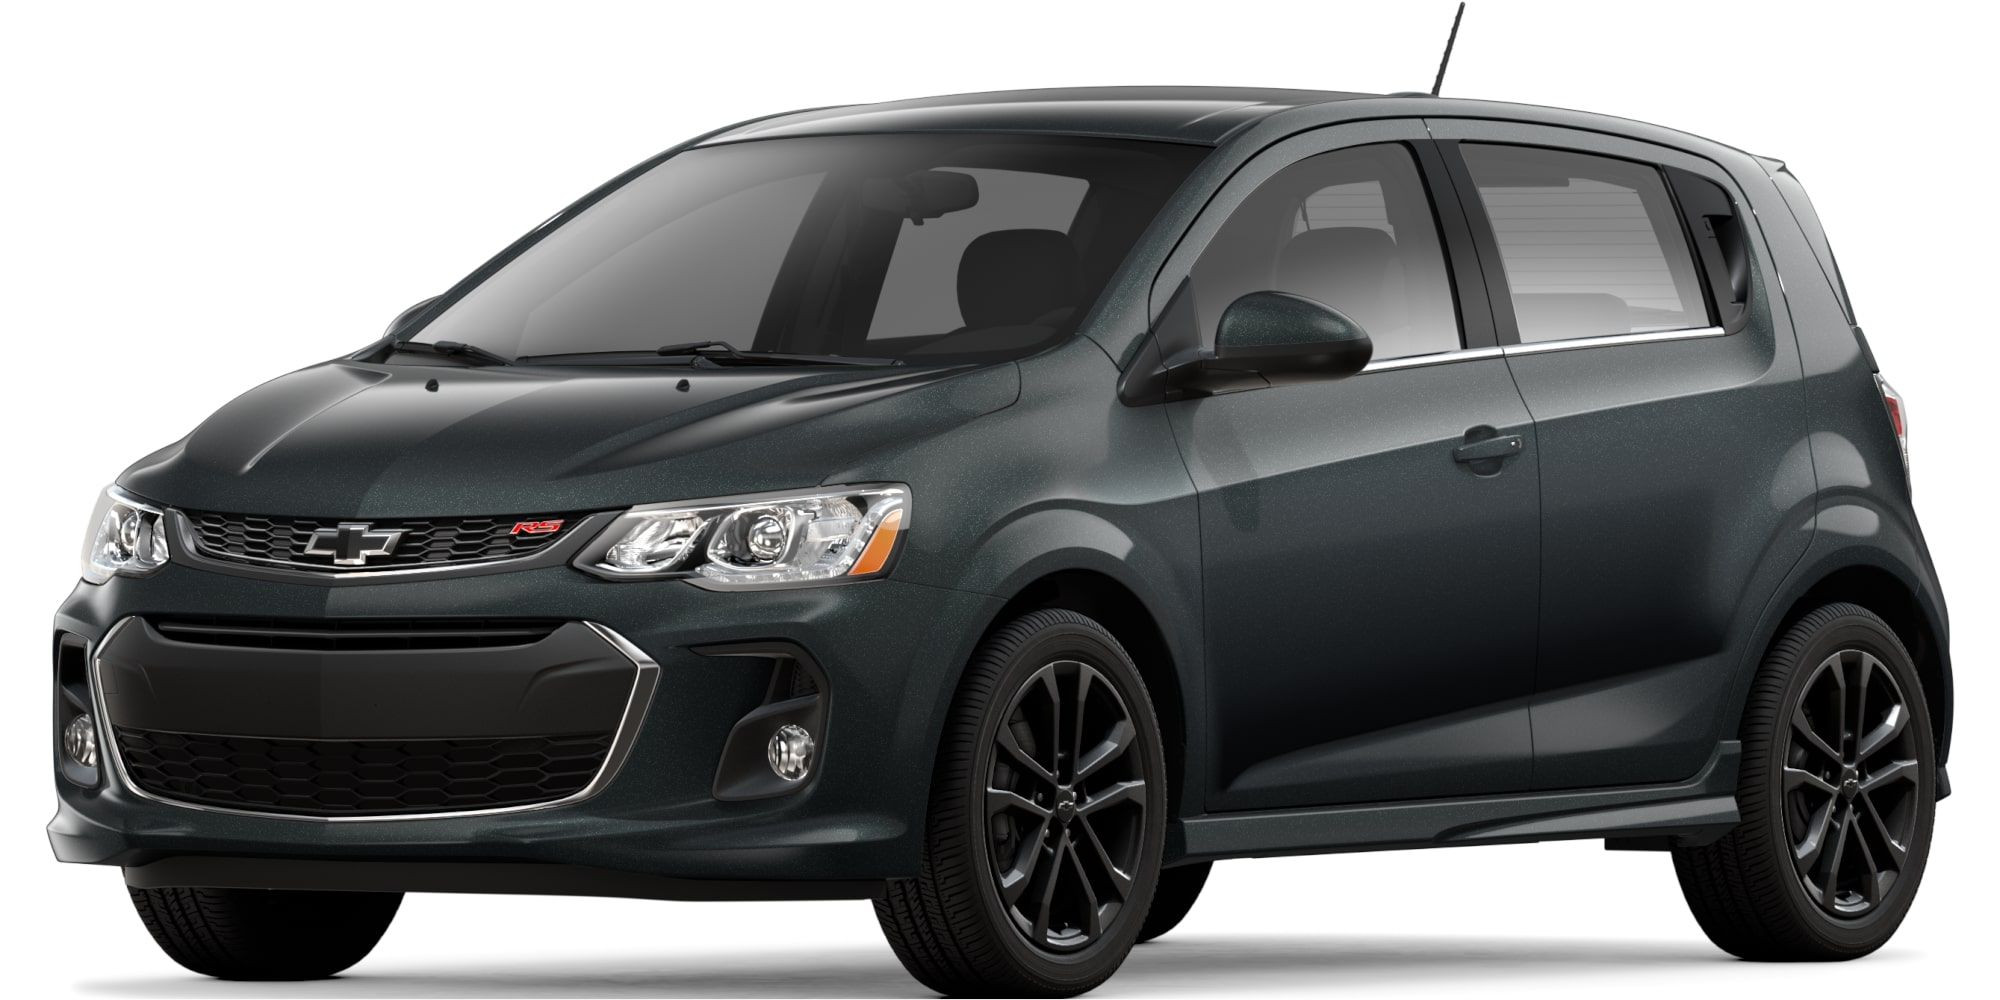 Chevrolet Sonic Owners Manual: USB Port